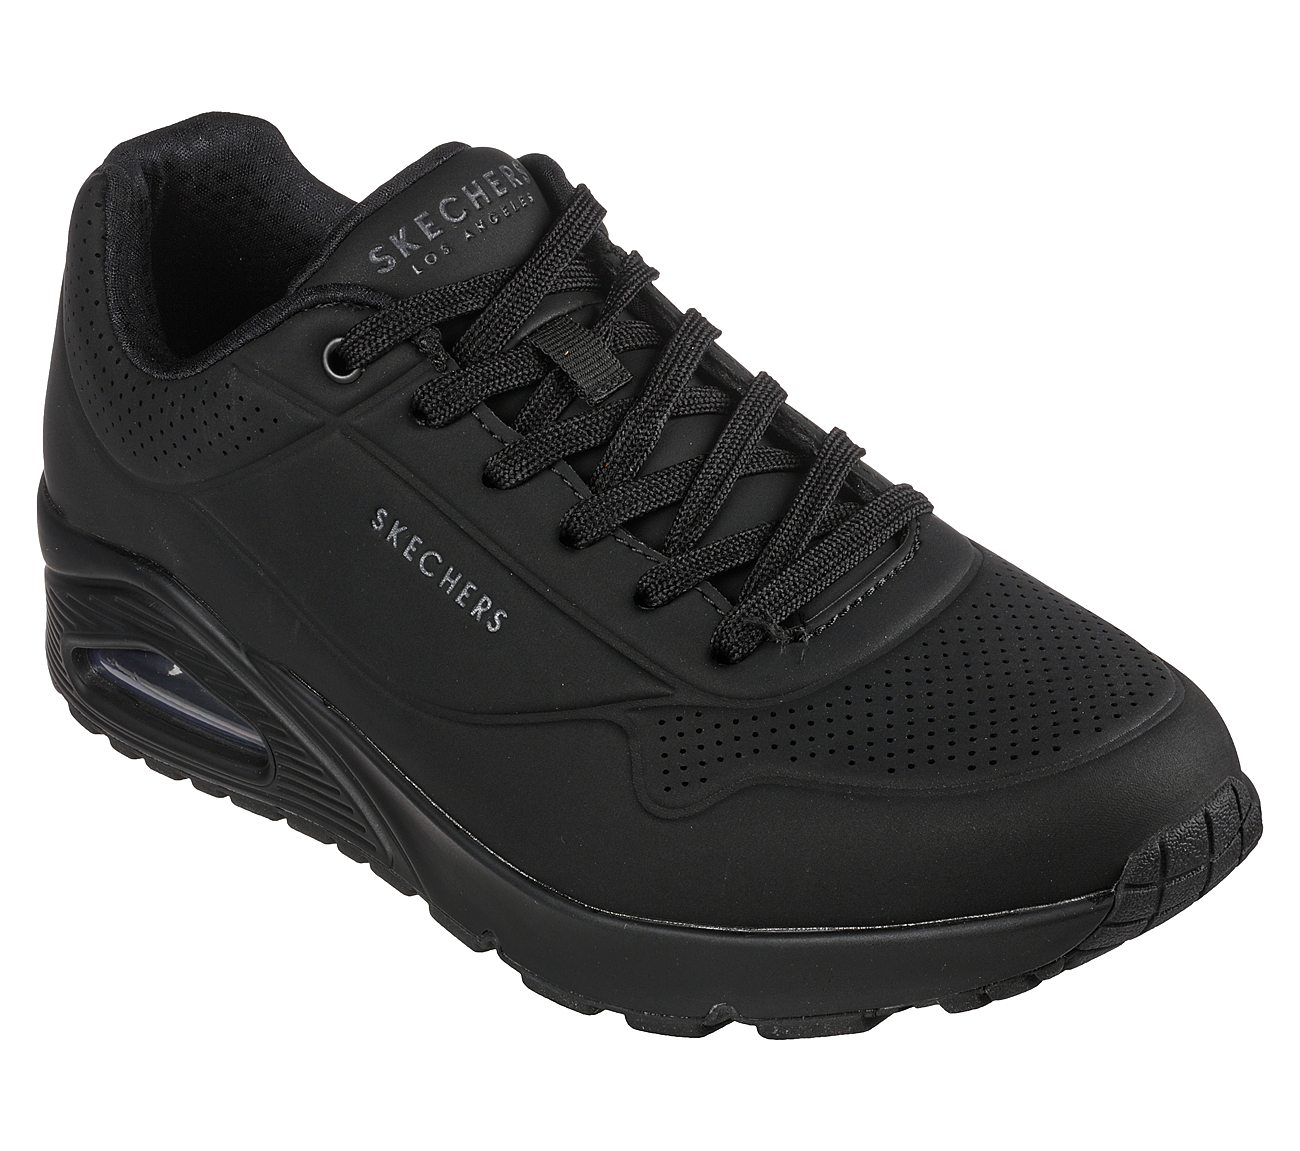 Buy Skechers Uno Stand On Air Skecher Street Shoes Only